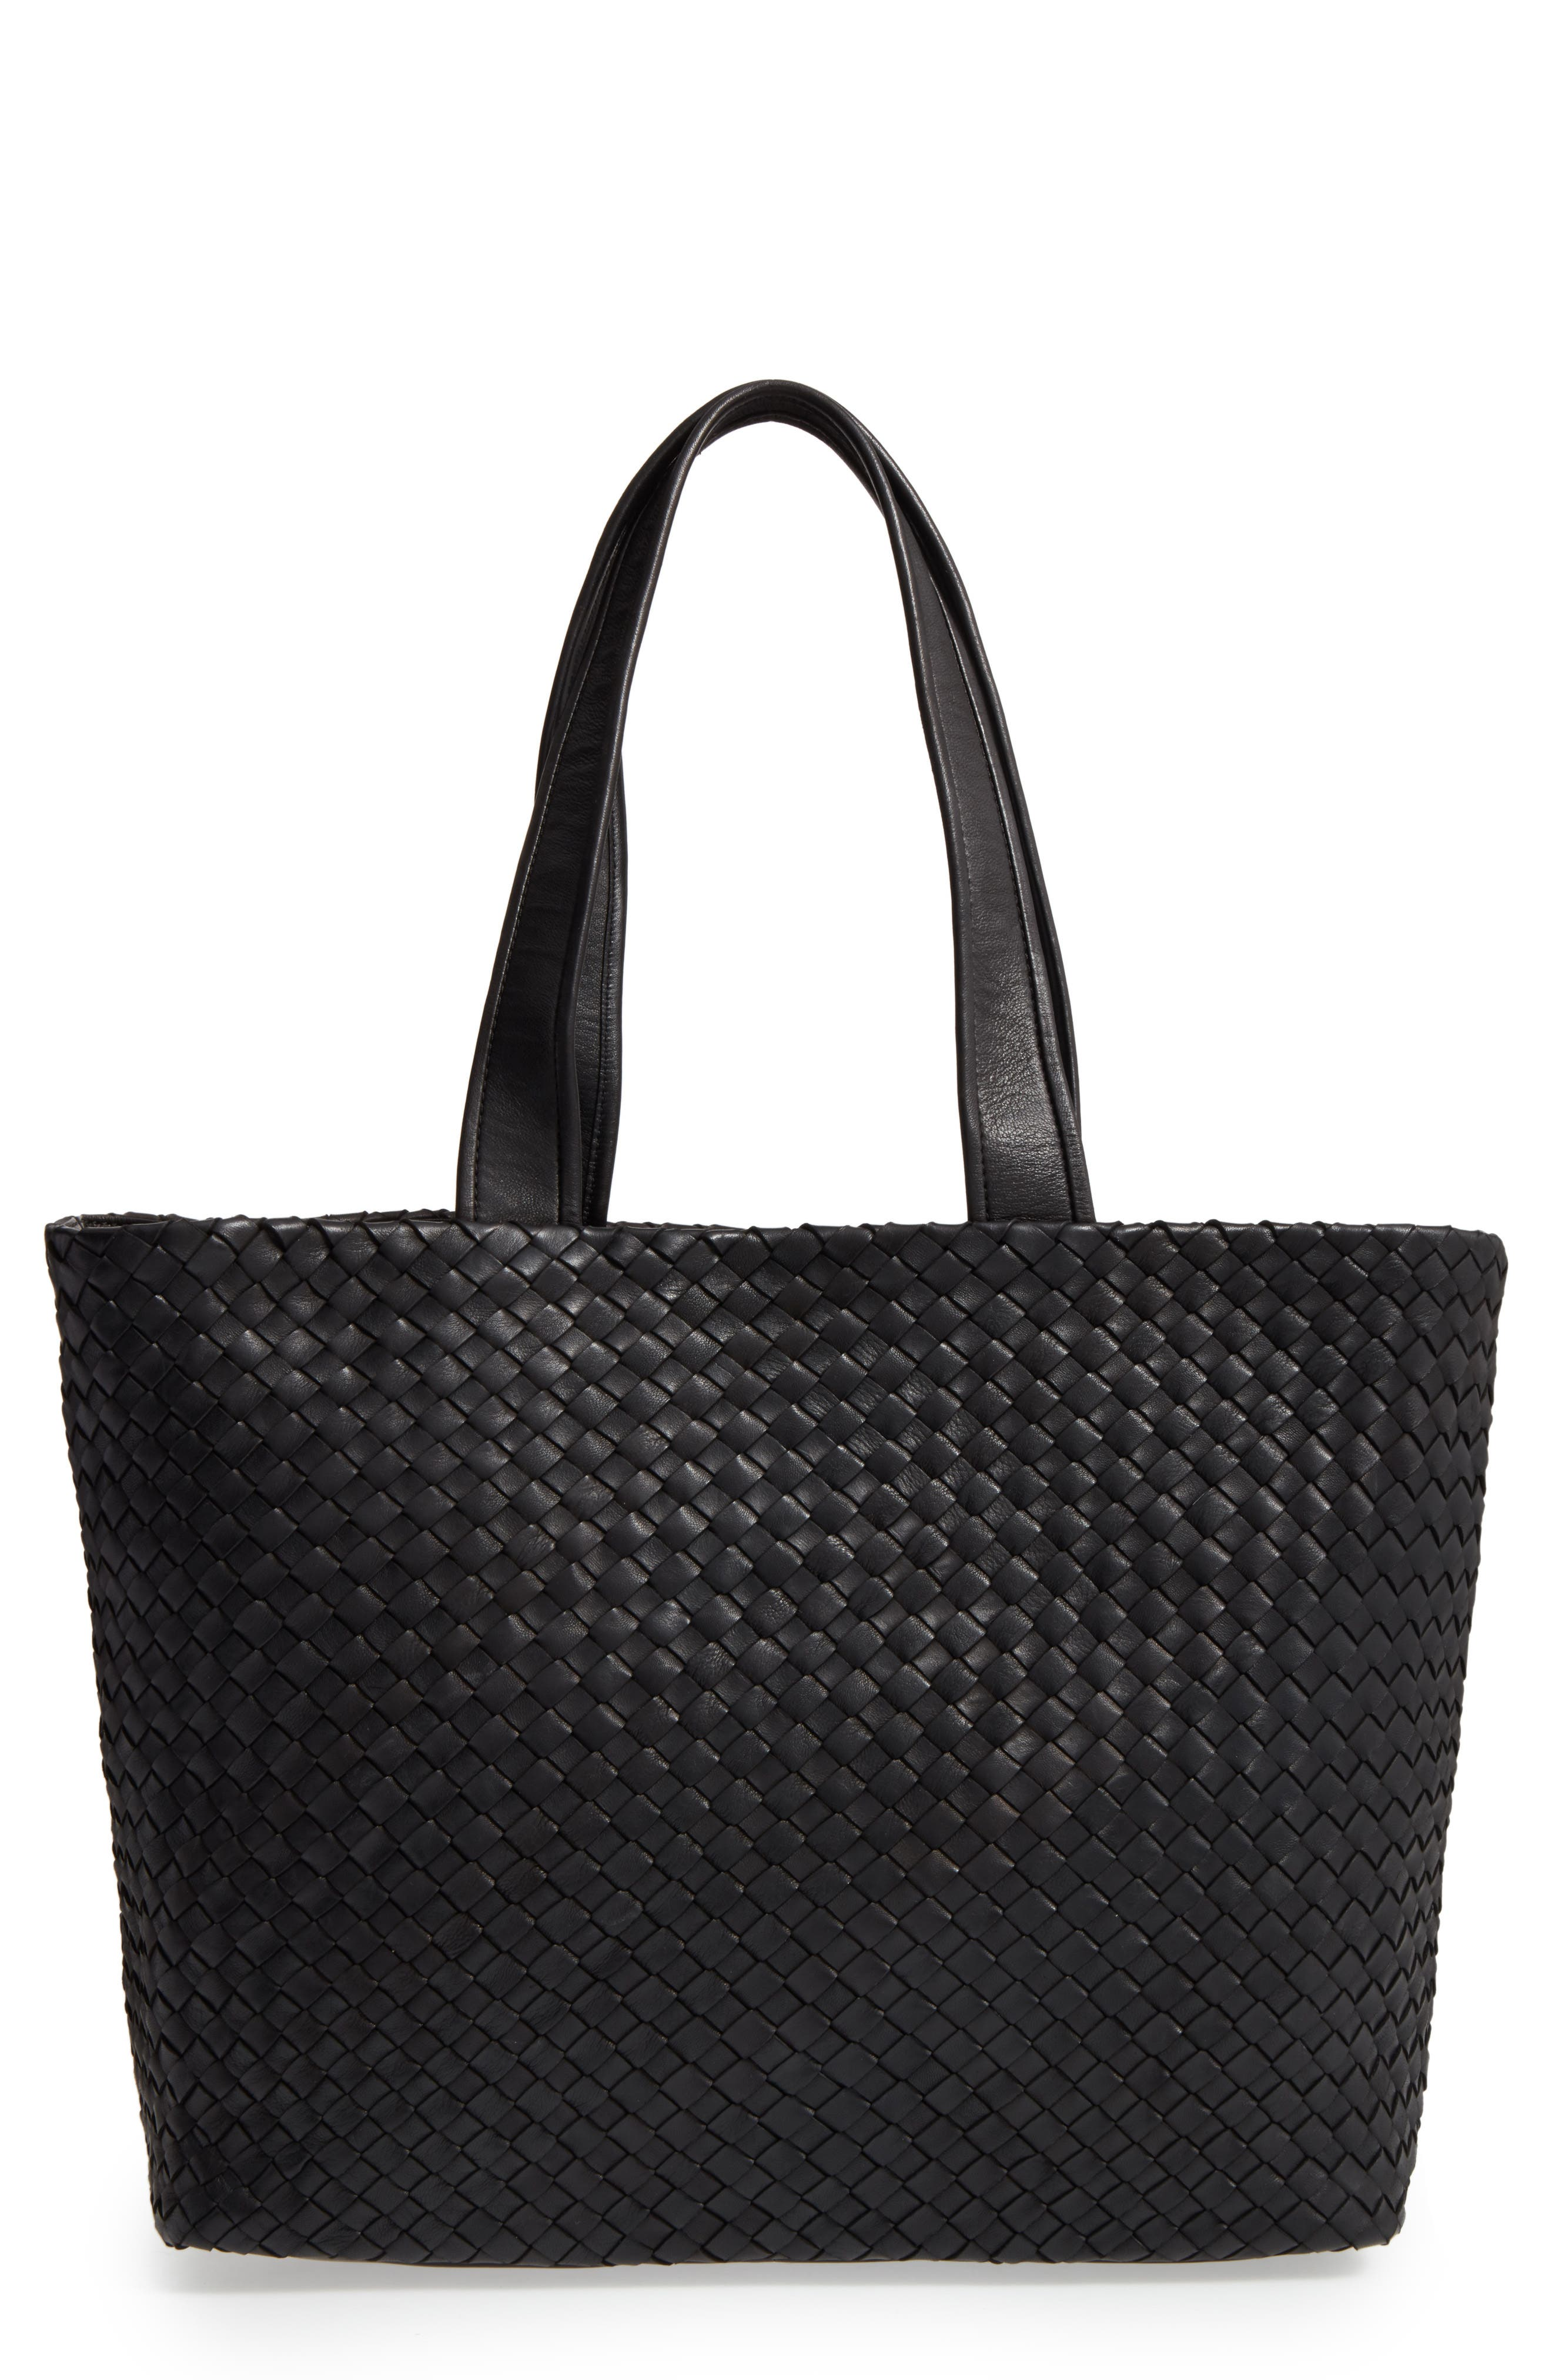 ROBERT ZUR Rina Leather Tote, Main, color, 001